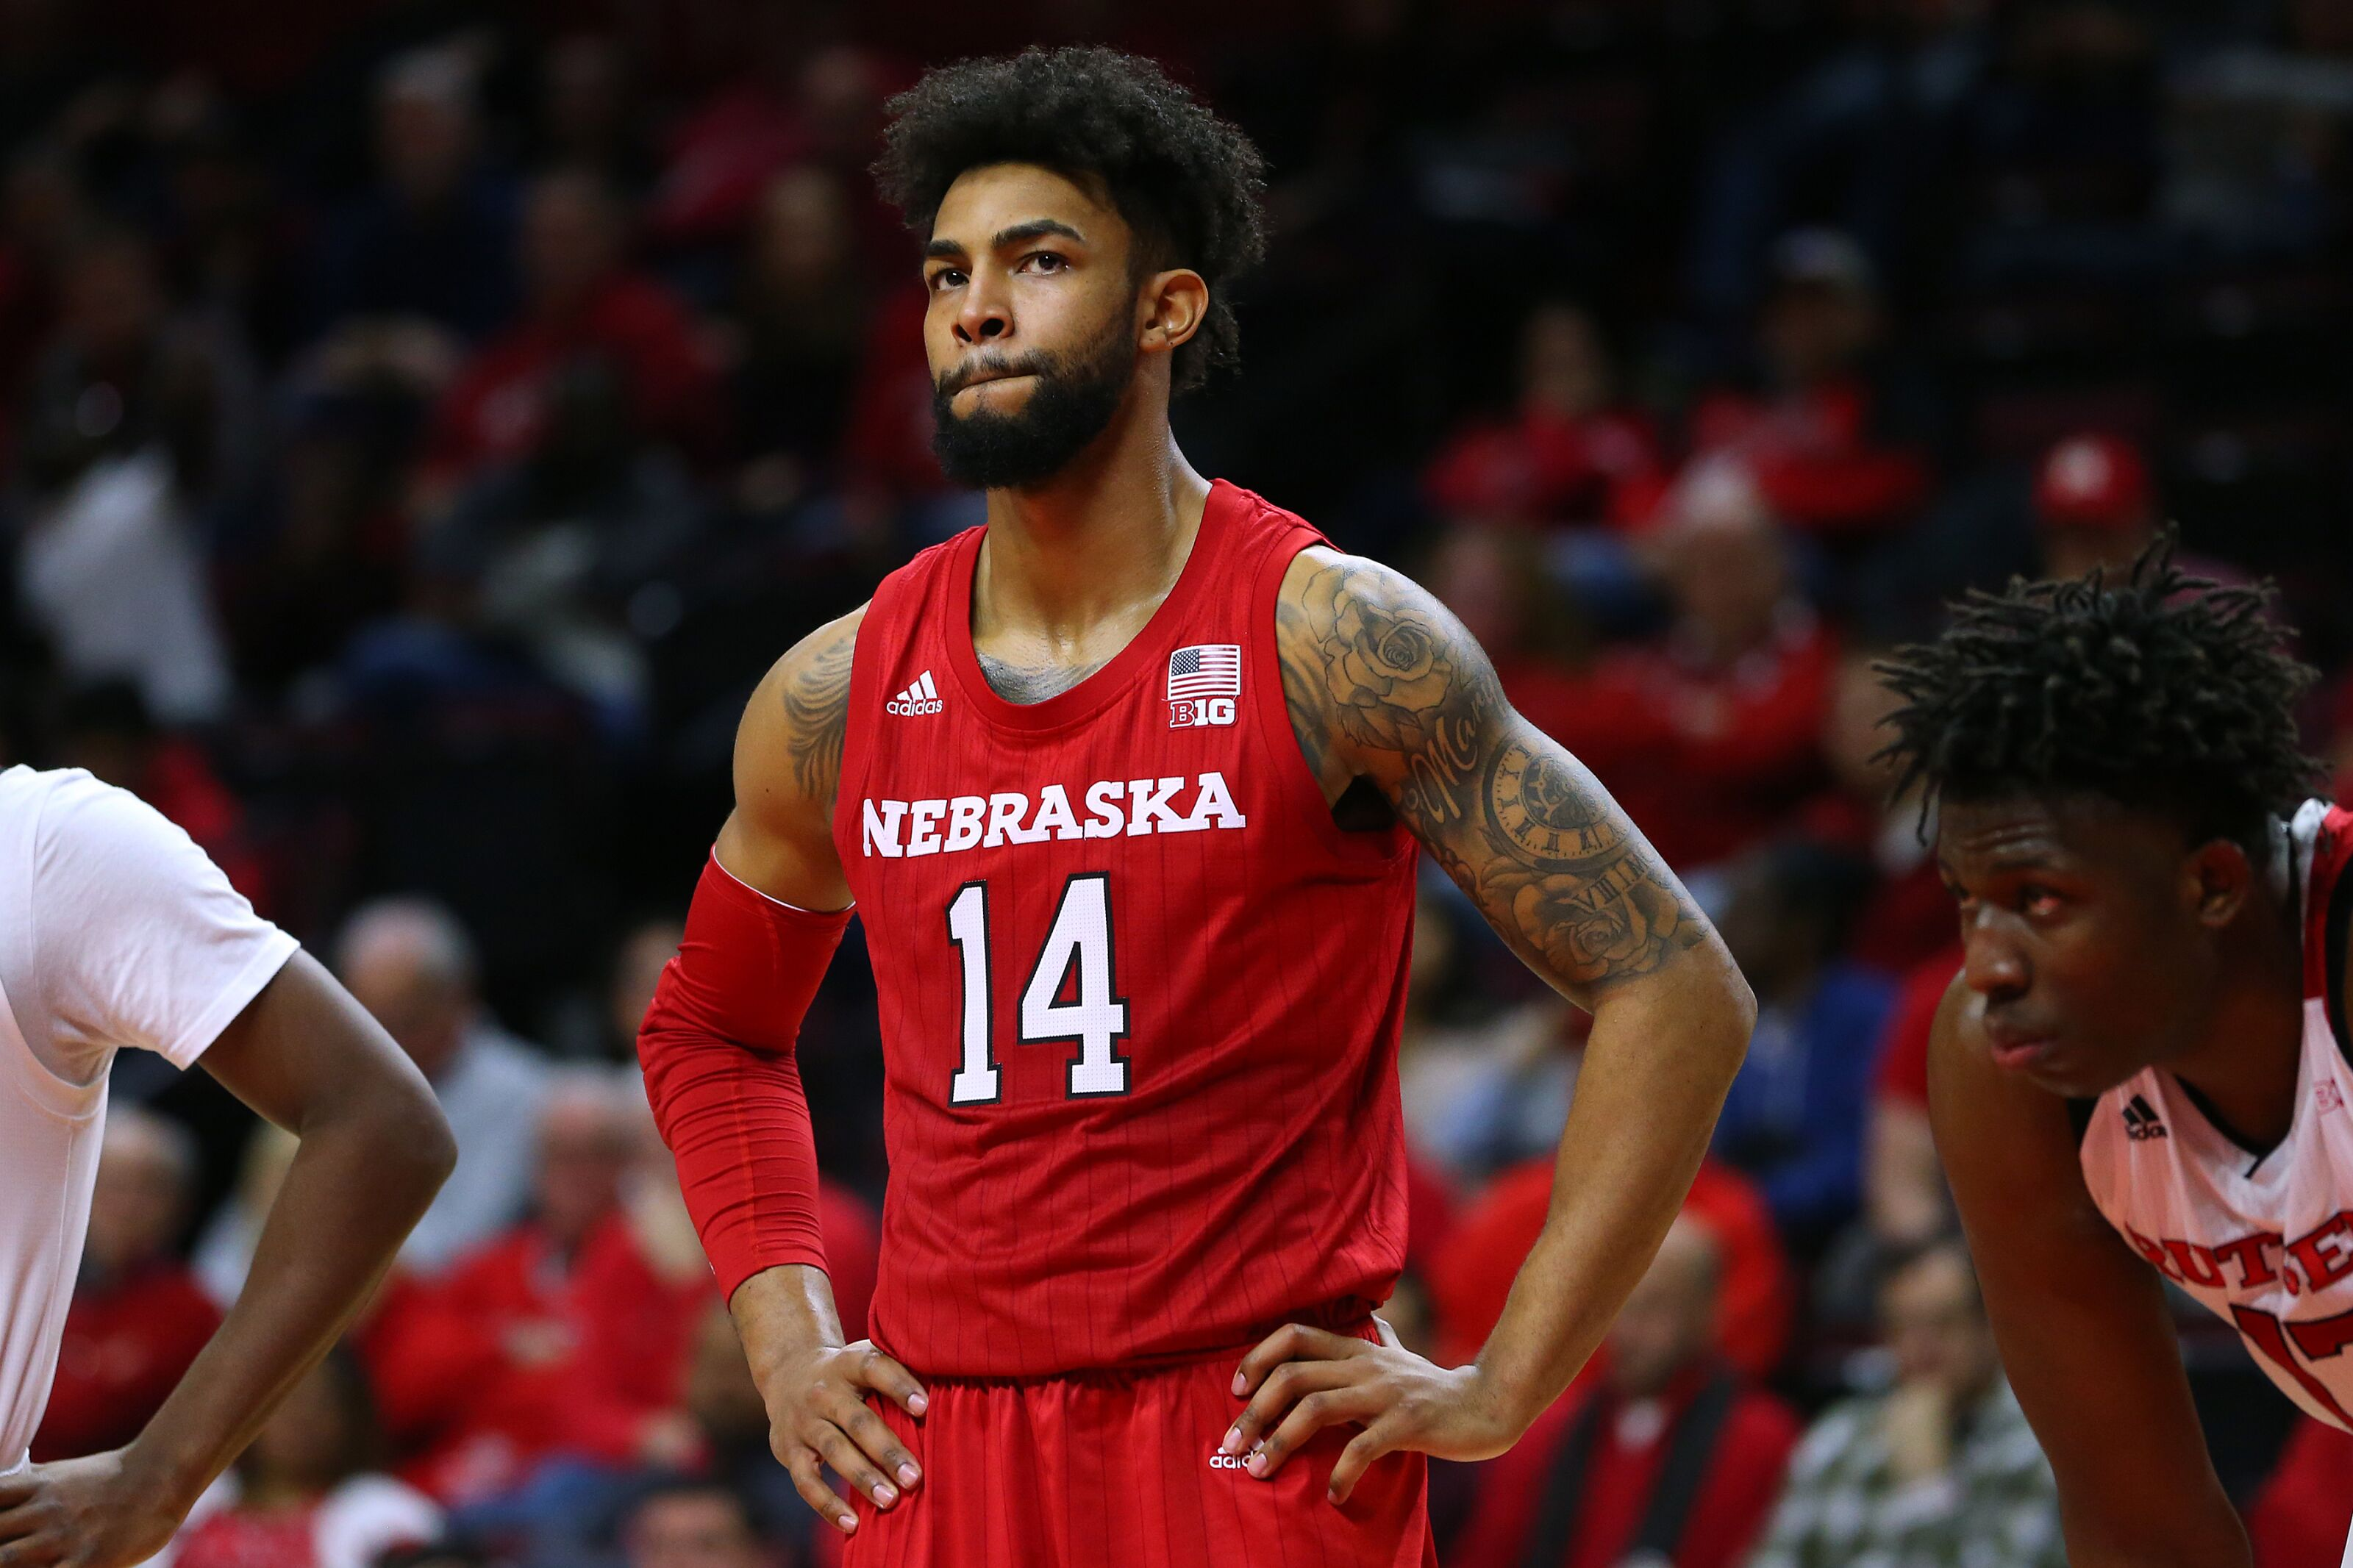 5a91f4480d1 Nebraska Basketball: How to watch and storylines for Michigan State